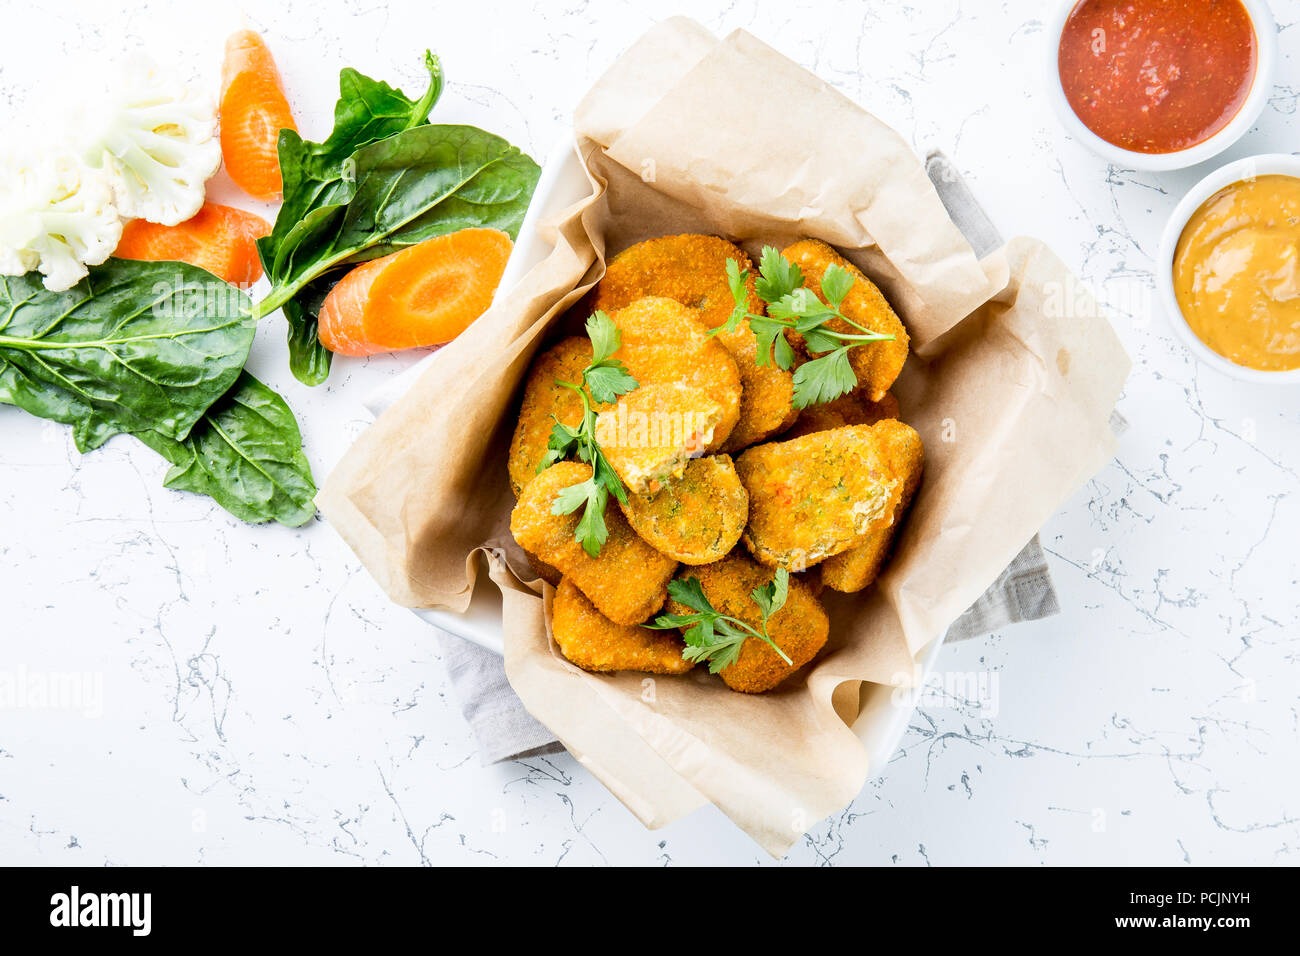 Healthy vegetarian nuggets with carrots, cauliflower and spinach. Vegetable nuggets. Vegan food. Top view, white background - Stock Image